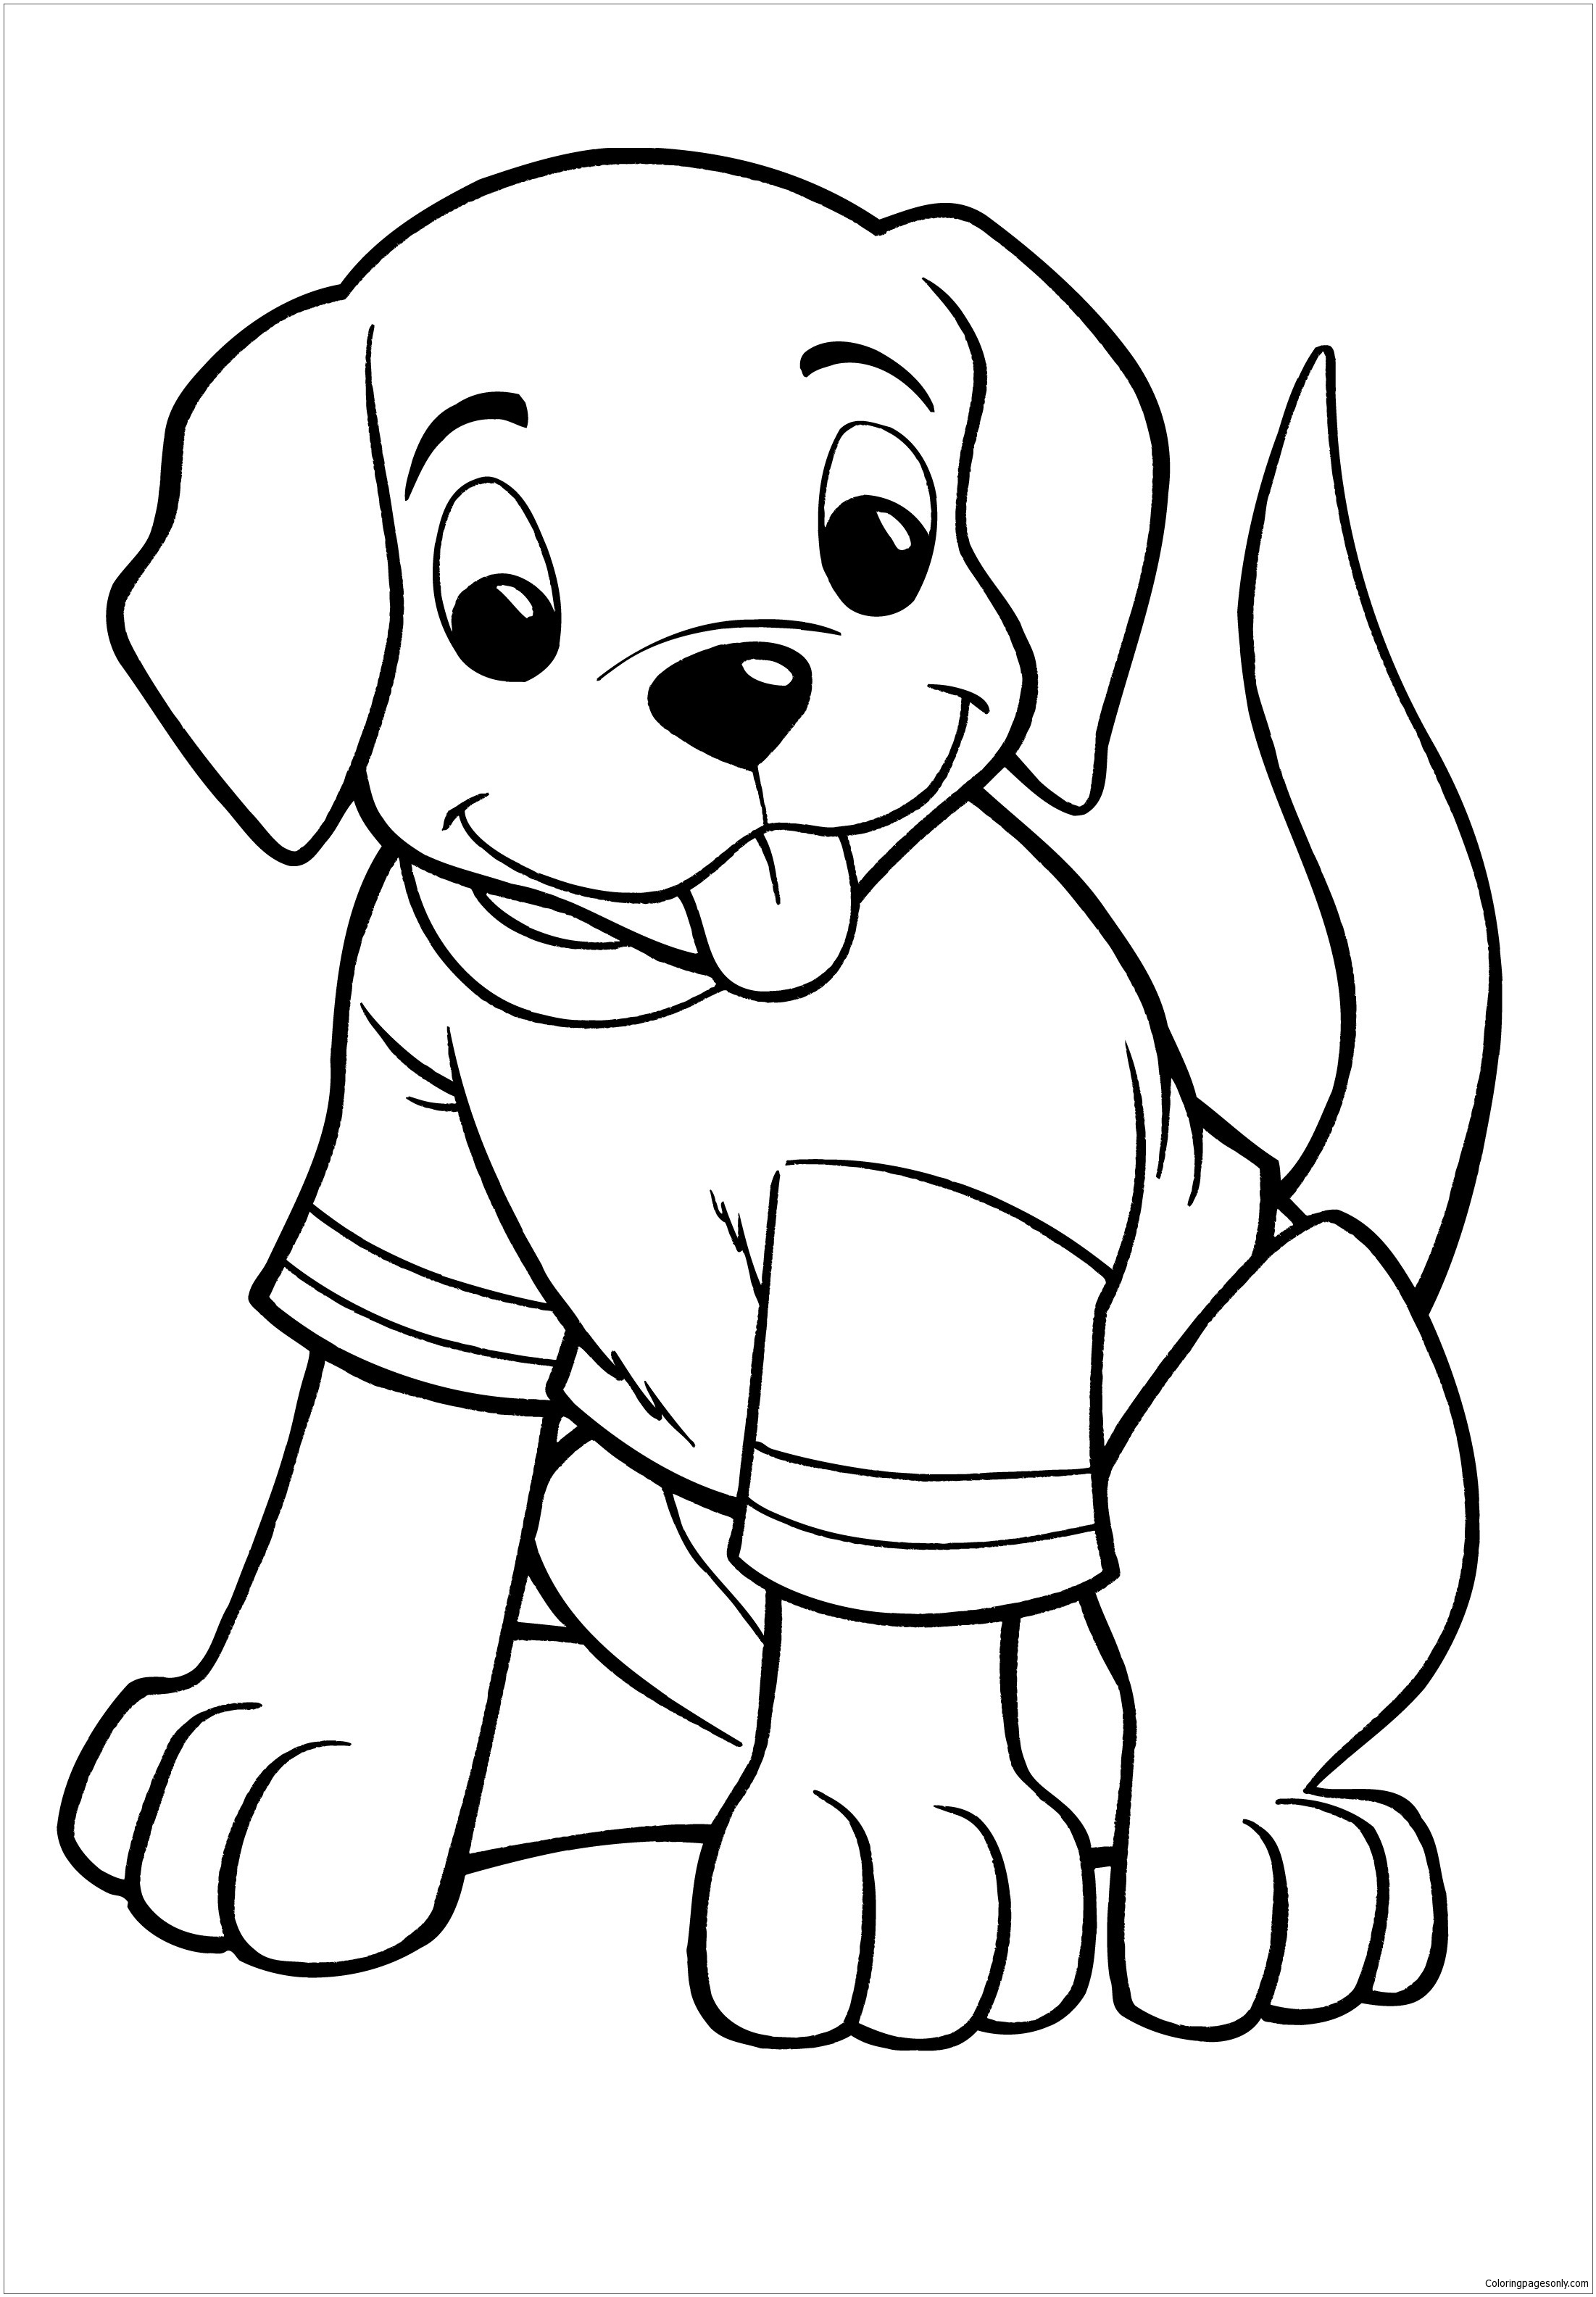 printable realistic dog coloring pages realistic puppy coloring pages coloring home printable dog pages realistic coloring